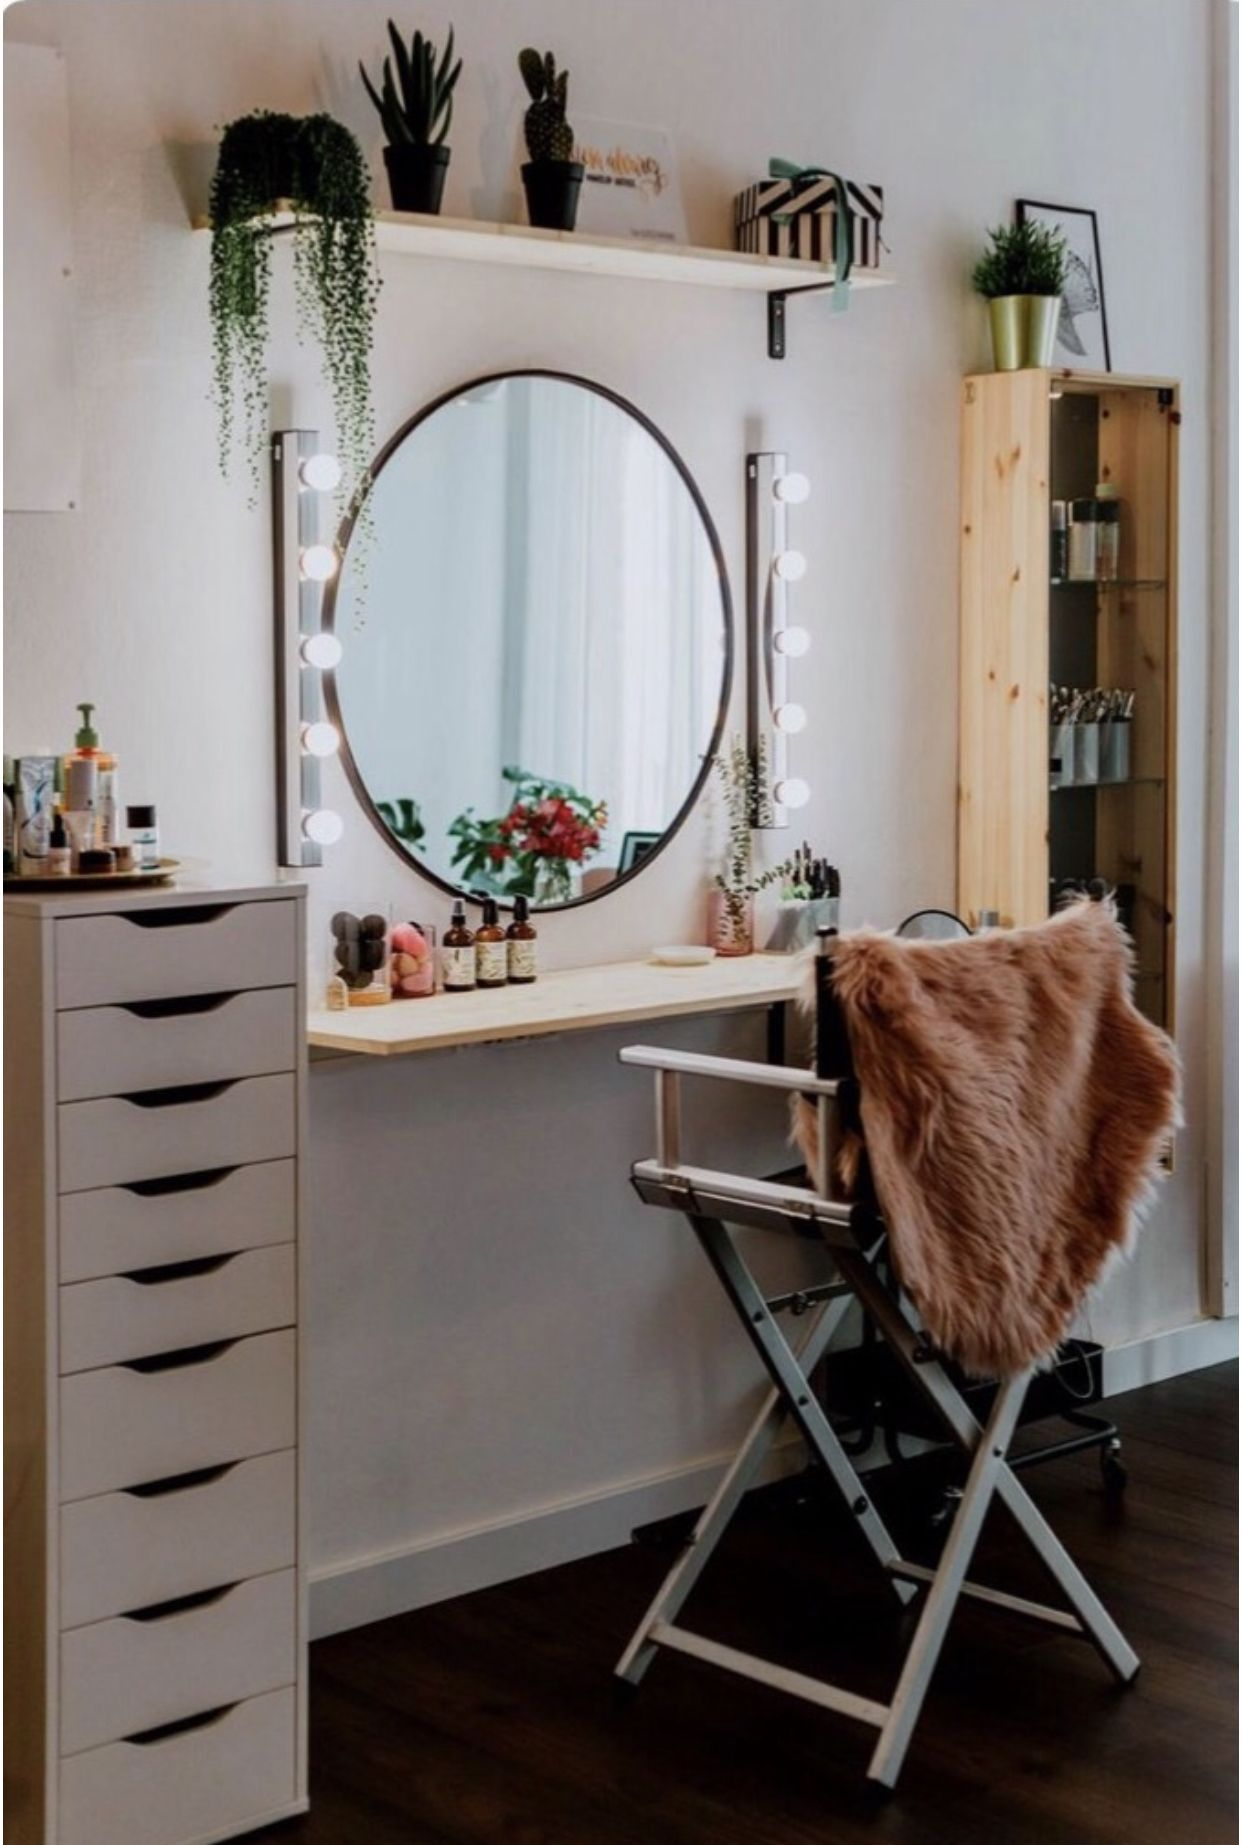 55+ Perfect Makeup Room Ideas for Makeup Lovers images